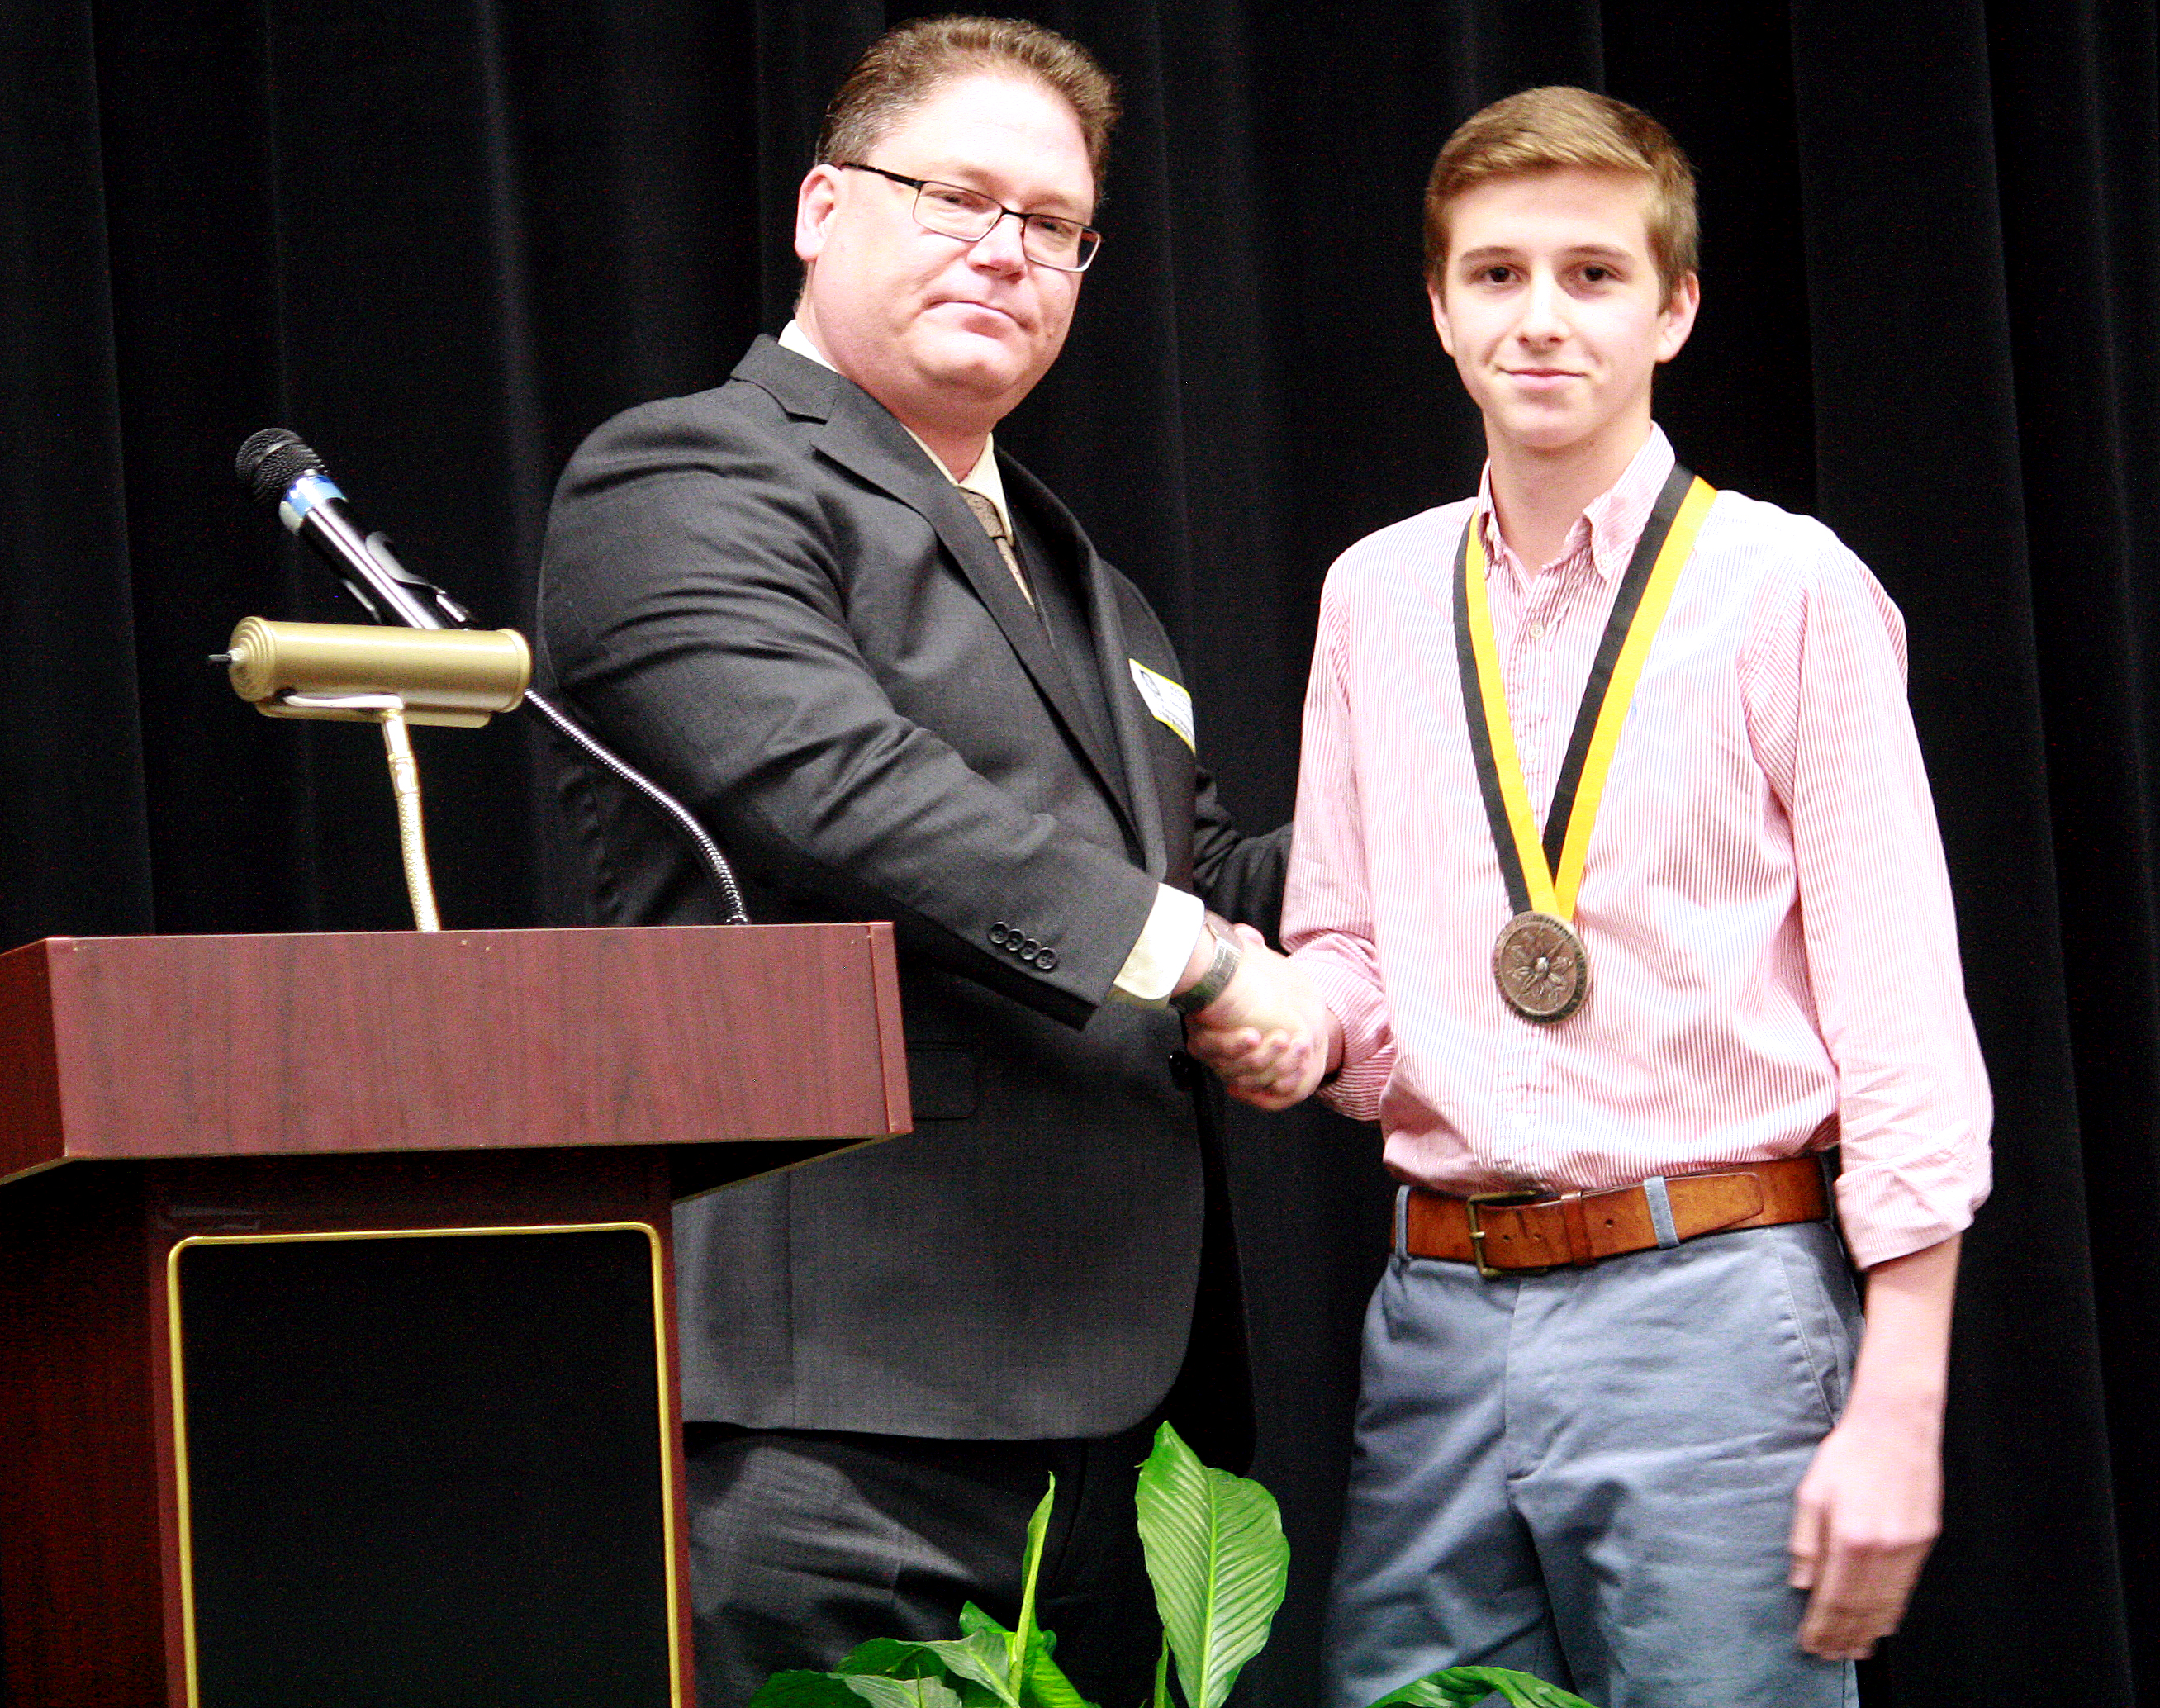 Central student receives gold medallion, scholarship, trip to D.C. for volunteer award